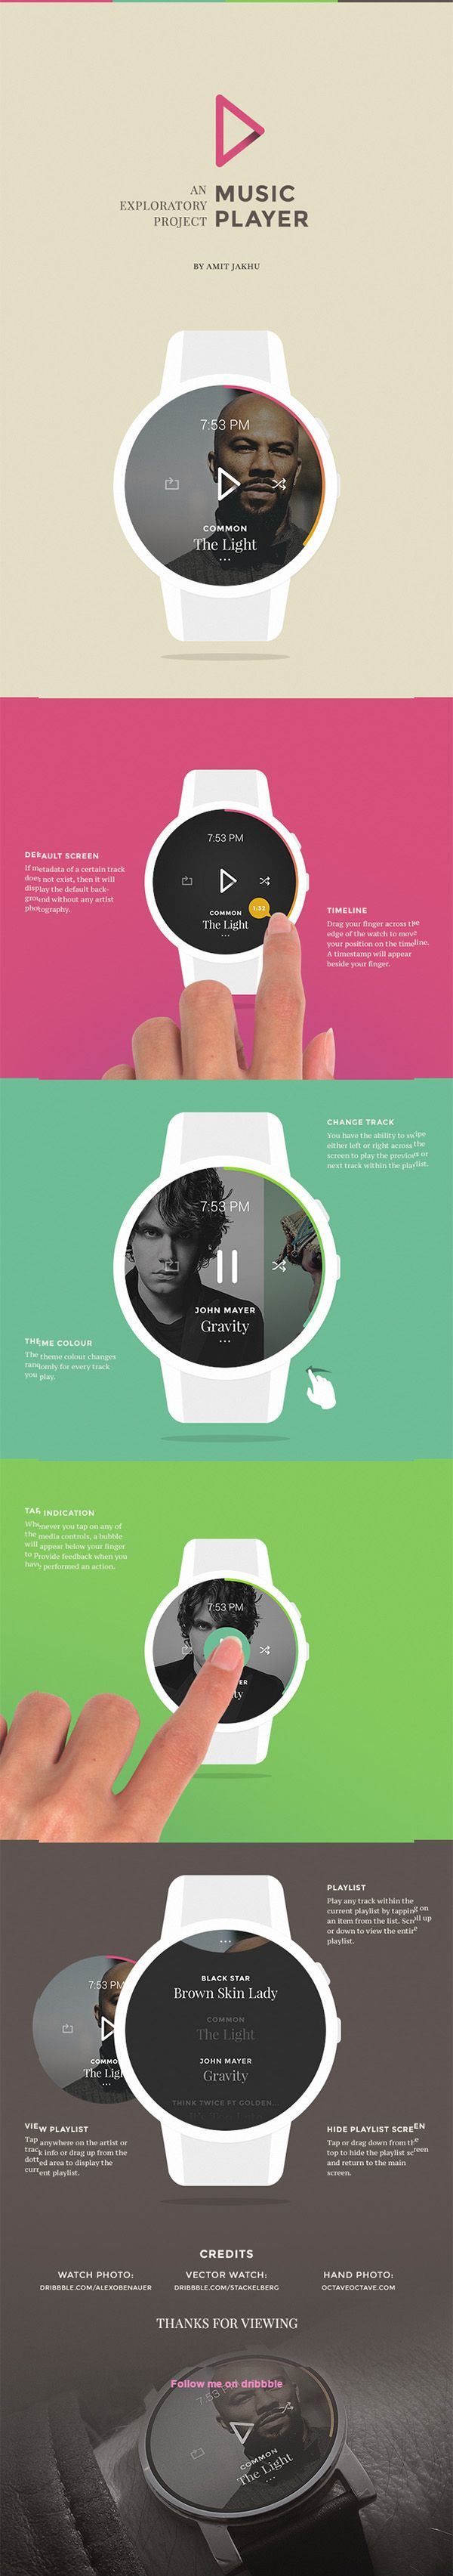 SMART WATCH MUSIC PLAYER - A conceptual and exploratory music application for a…